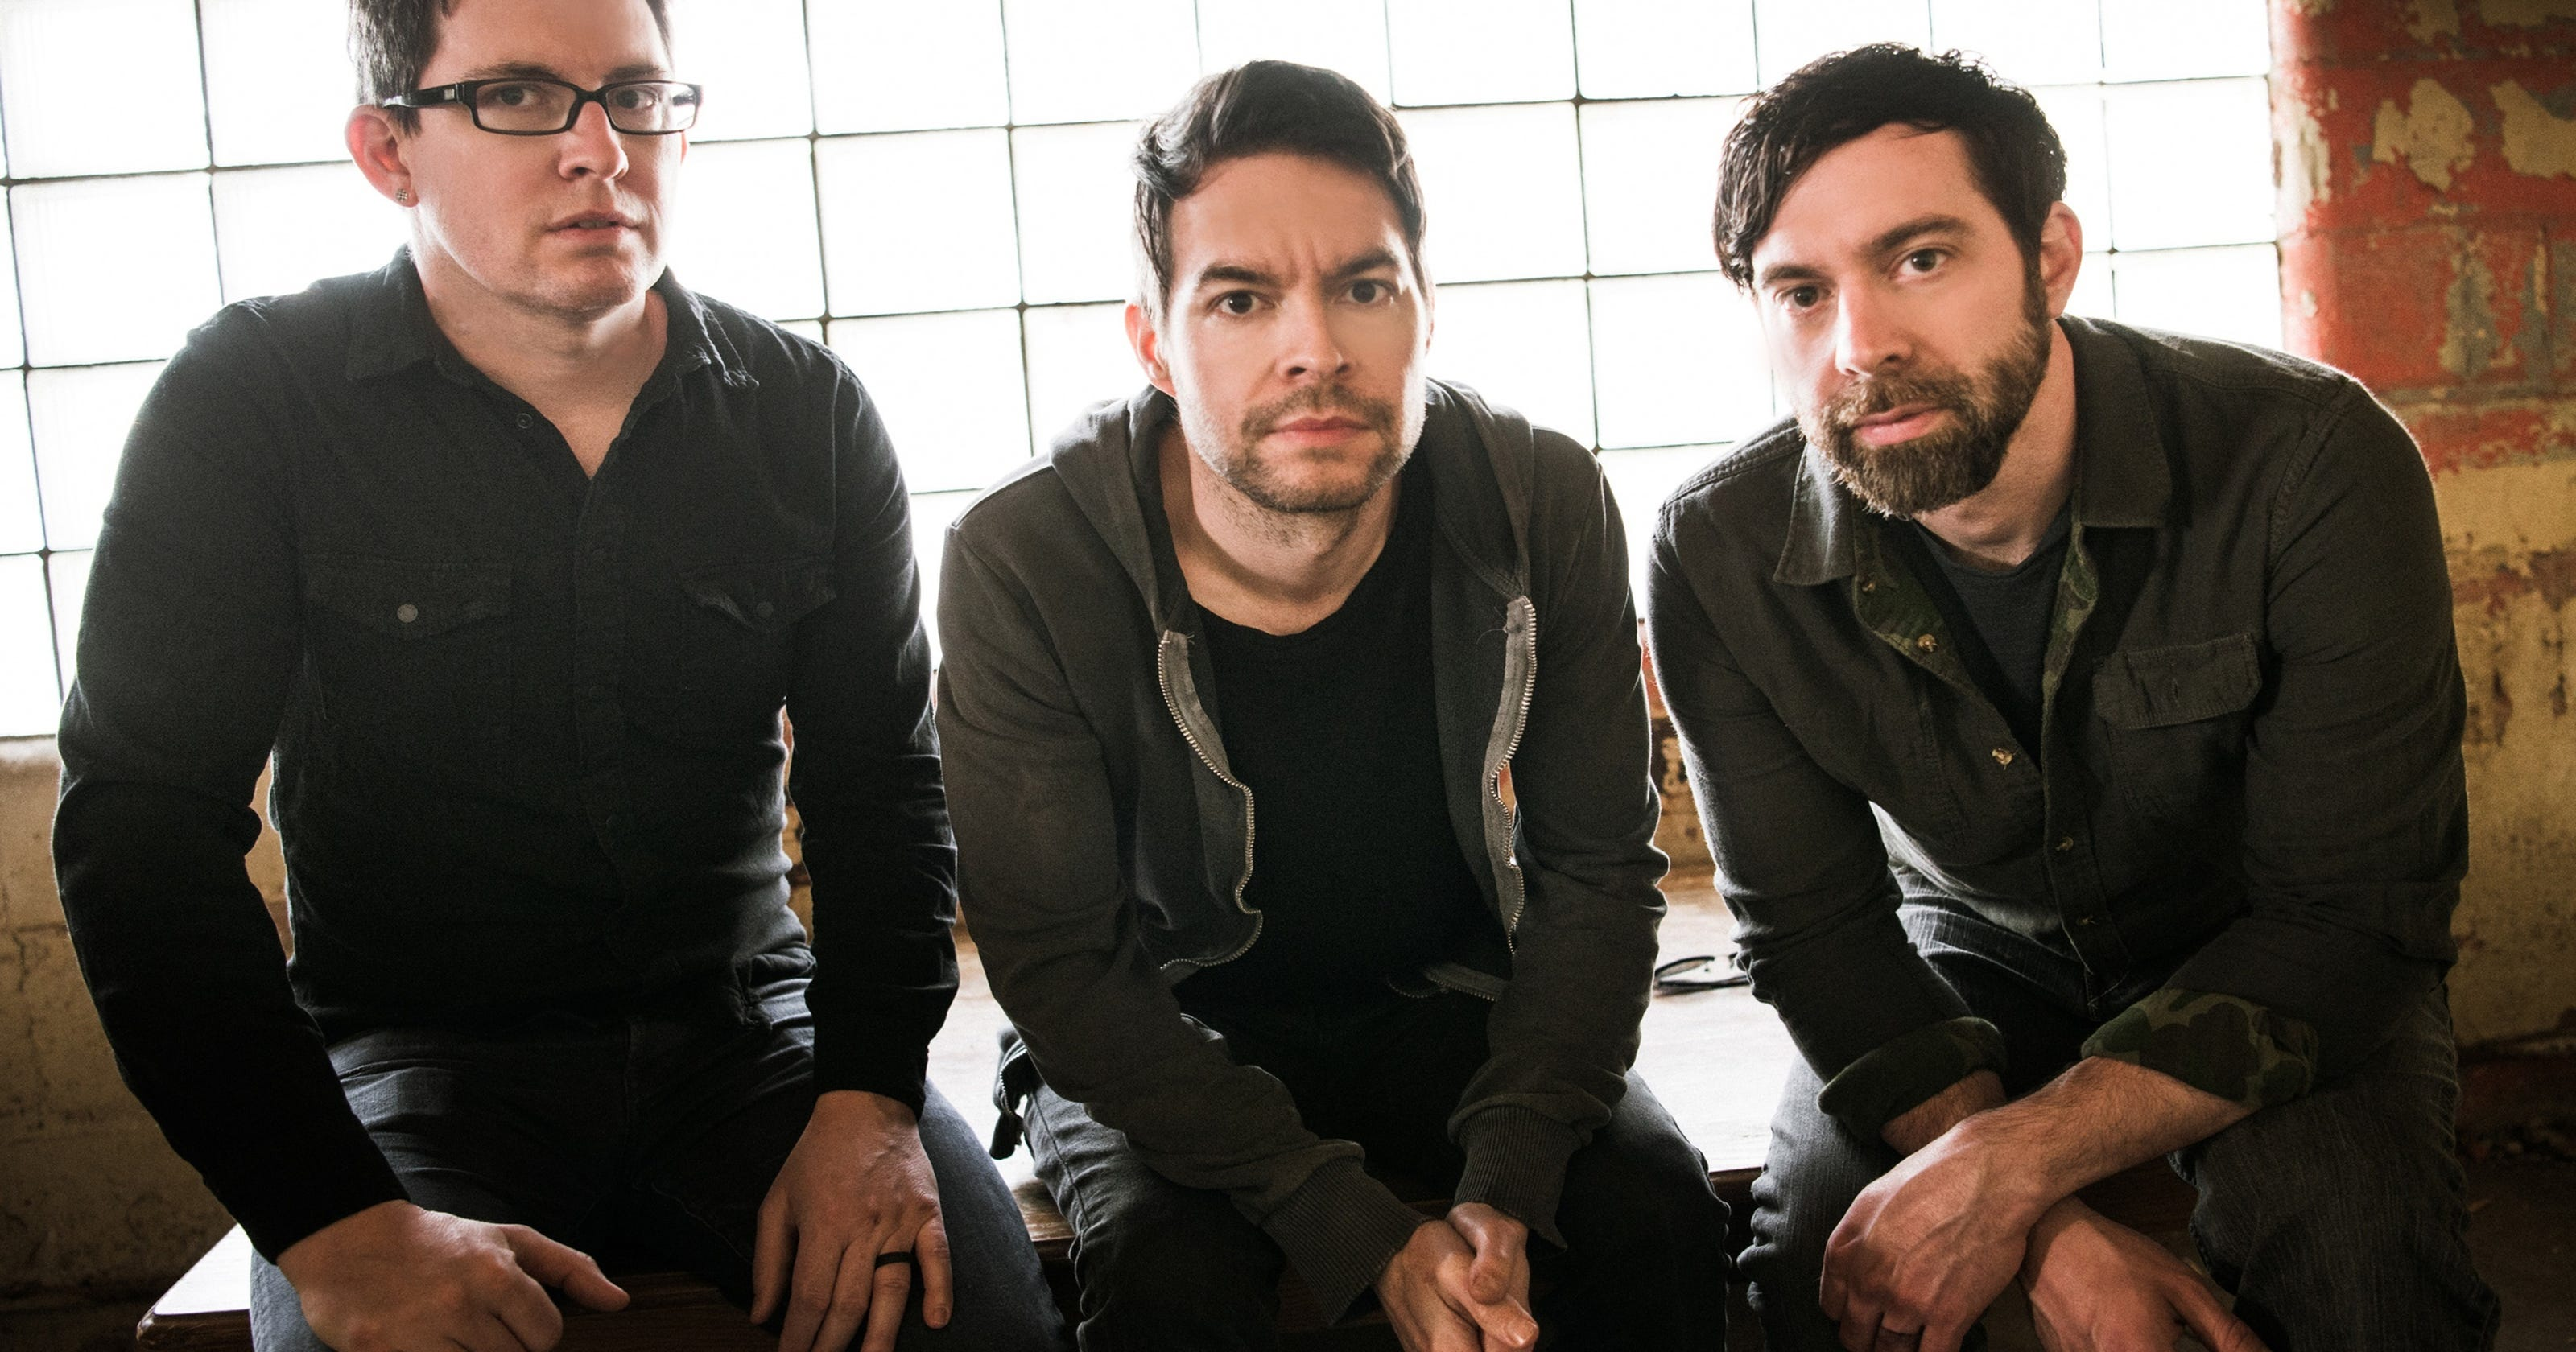 Chevelle drummer hails band 39 s rock steady approach - Chevelle band pics ...